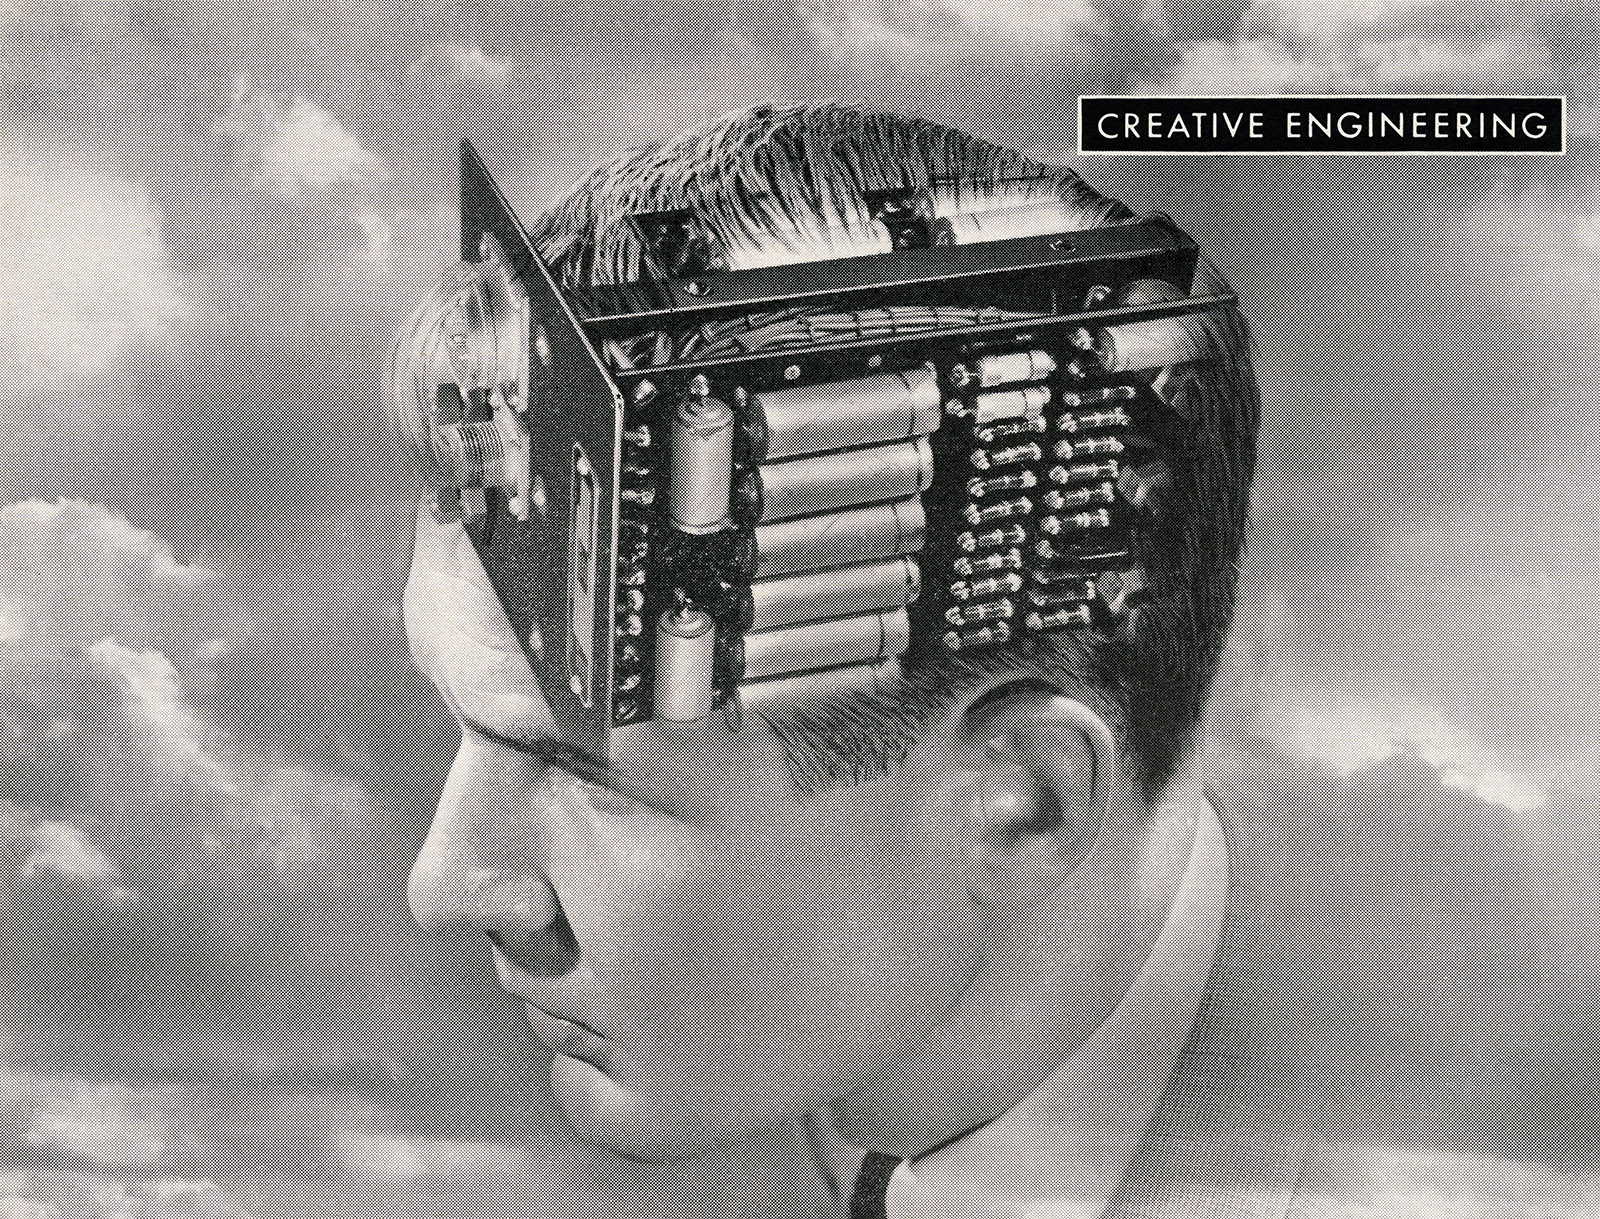 Man with an Electronic Circuit Board for a Brain, (artist unknown), 1949